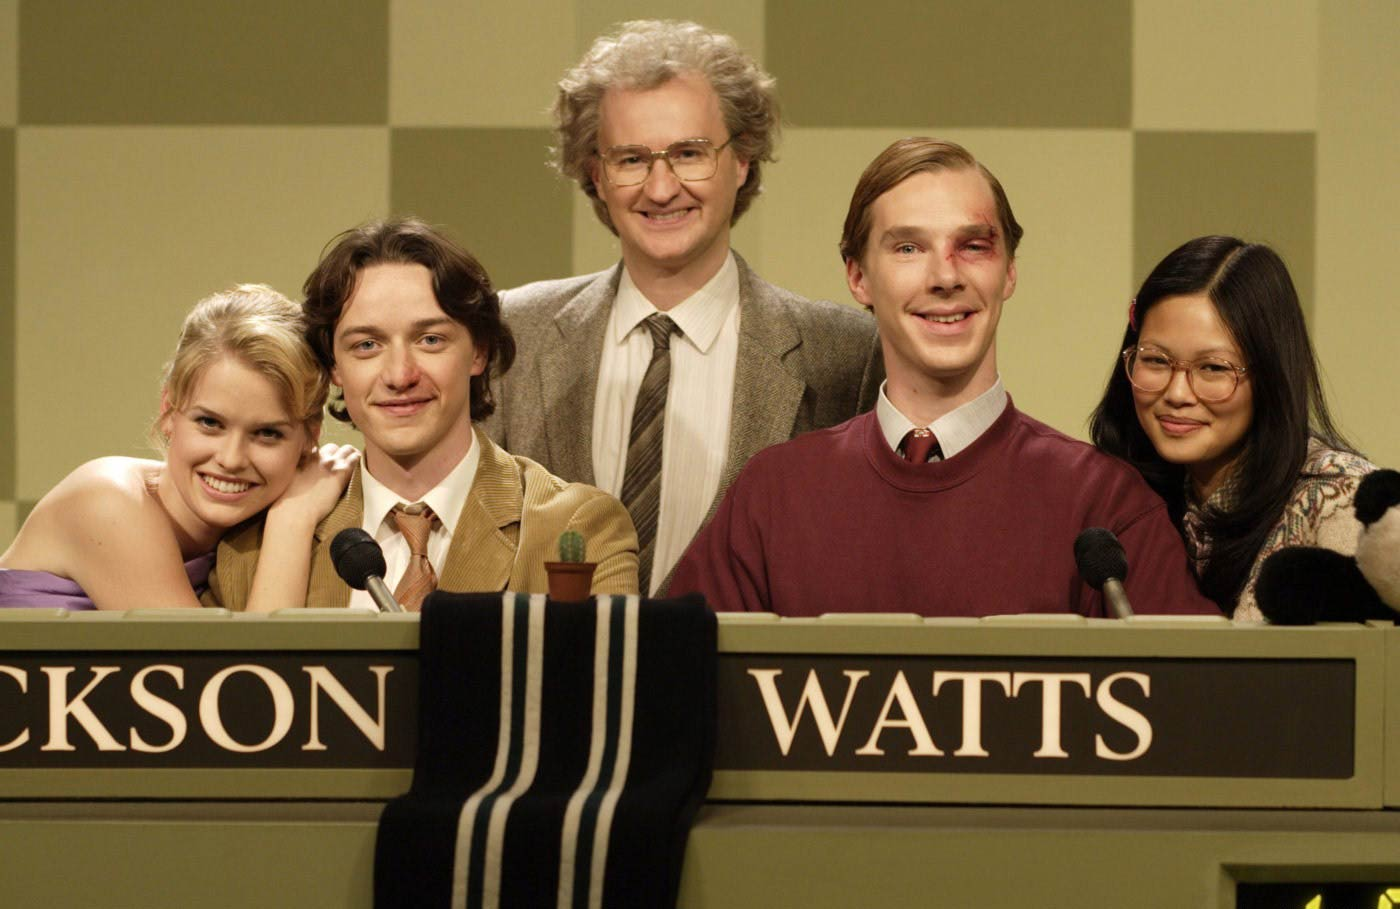 <strong>Starter for 10</strong> This 2006 British comedy had Cumberbatch (second from right) take on the role of Patrick Watts, the smug team captain for a British game show called University Challenge.